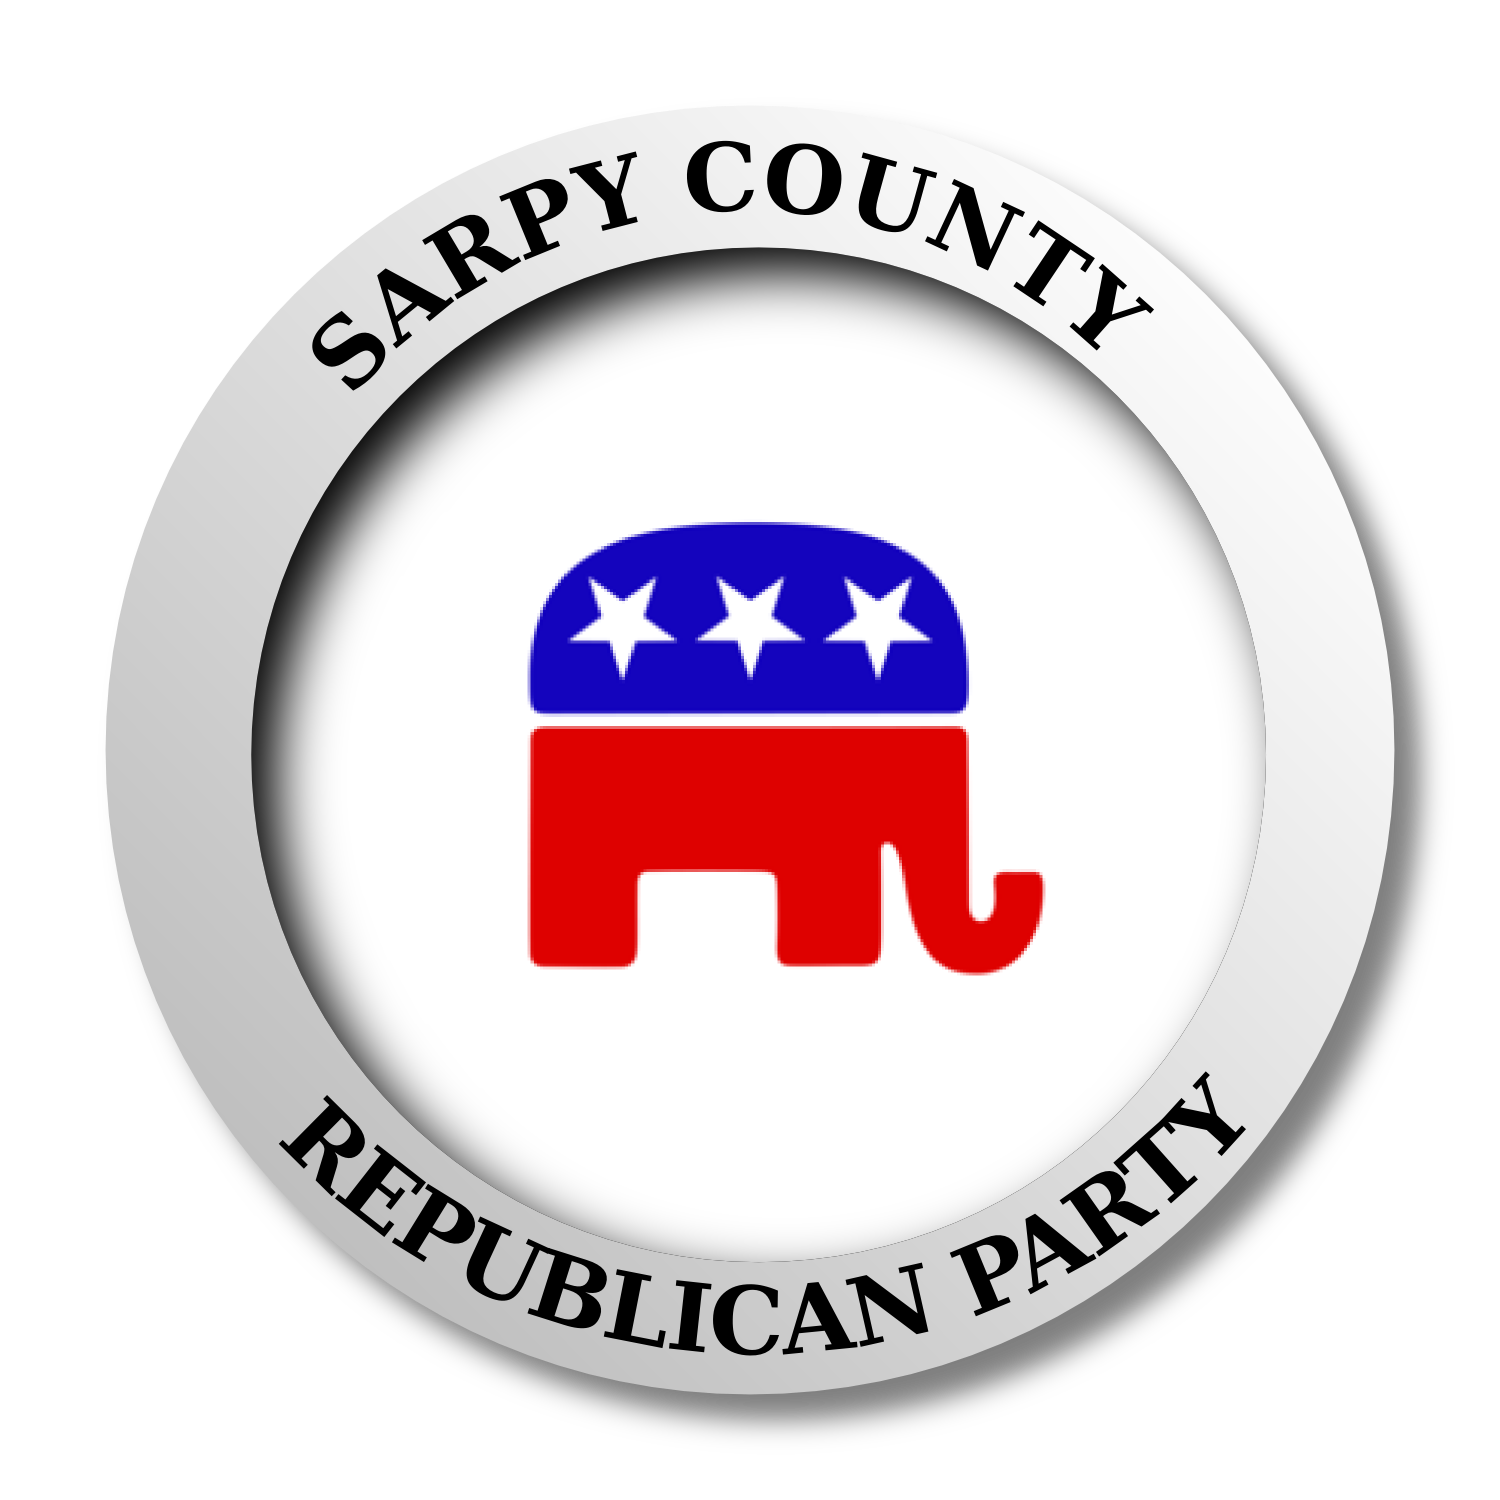 Sarpy County Republican Party